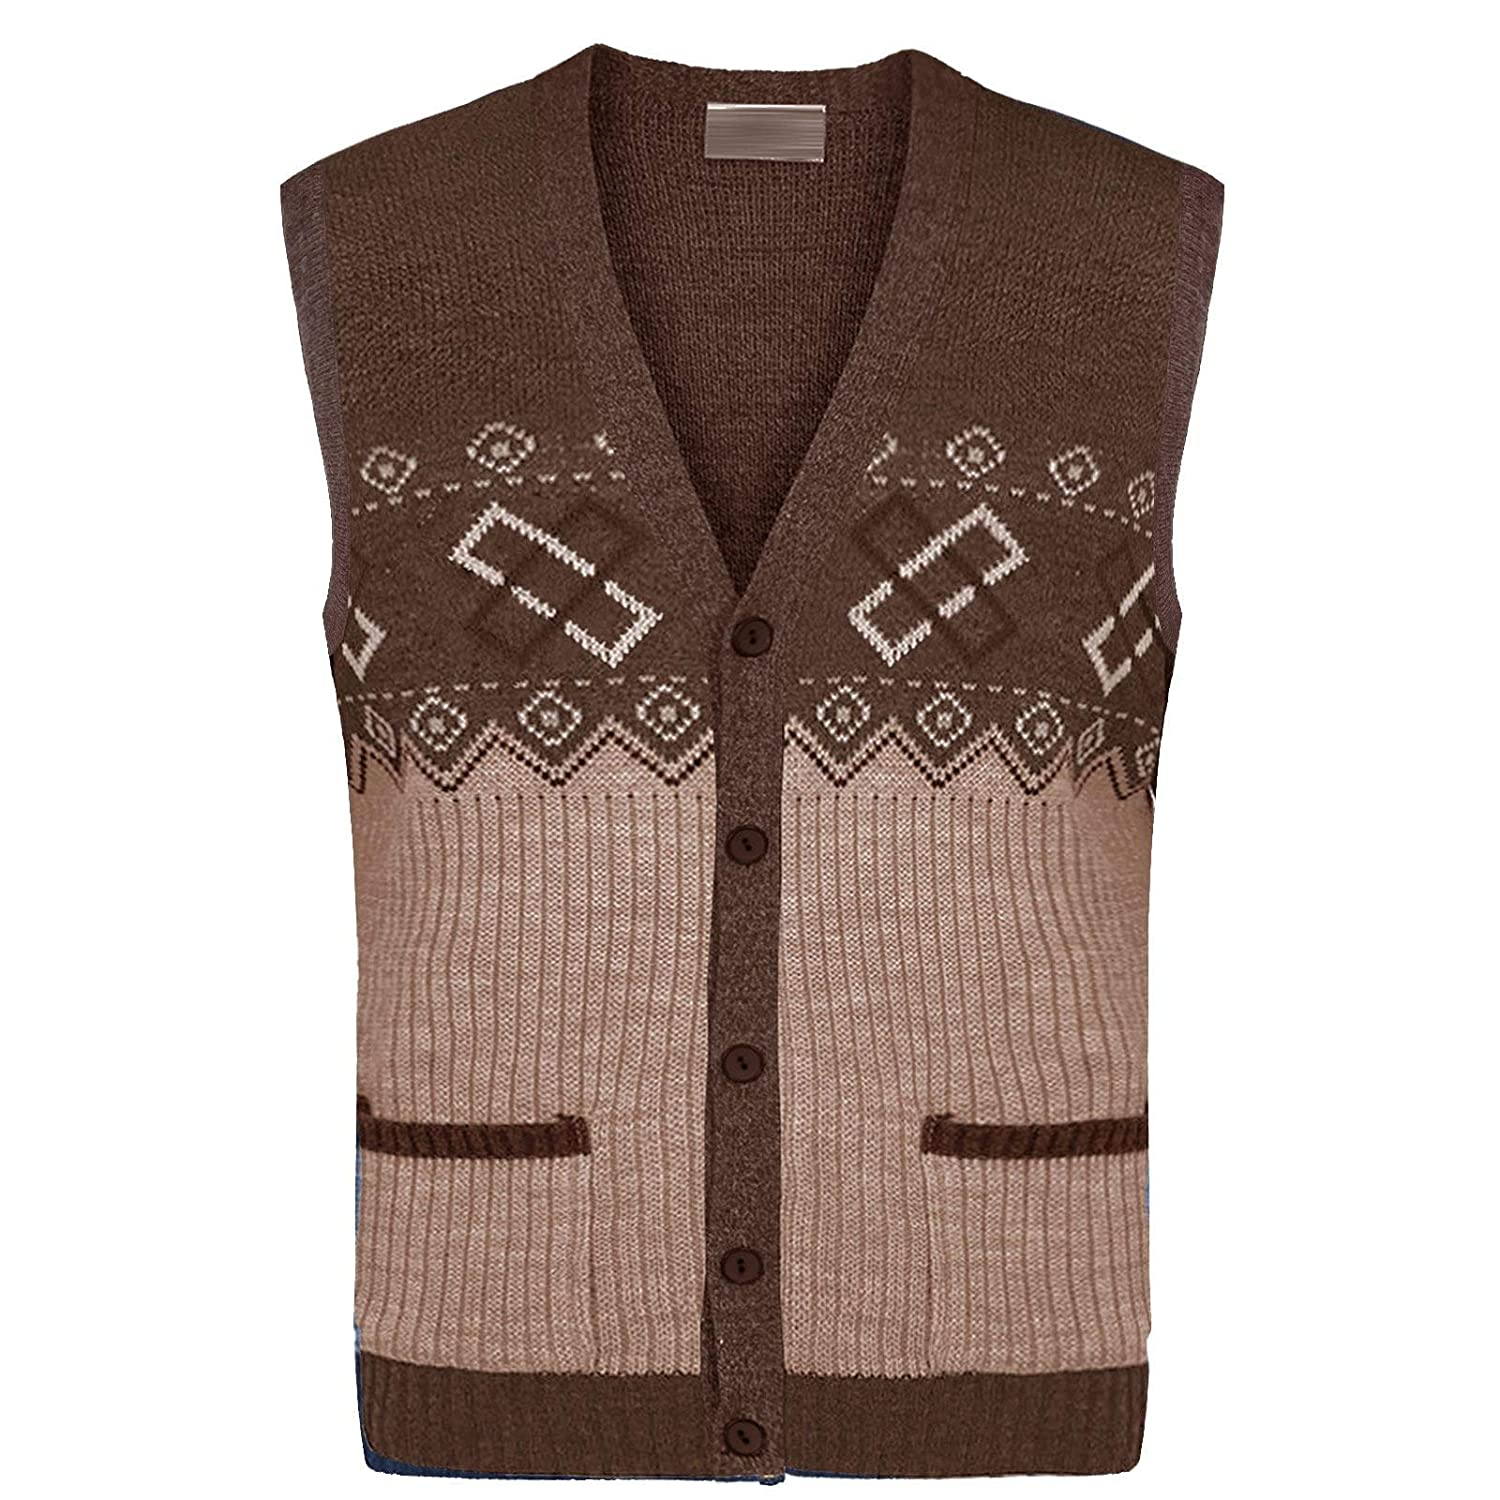 Mens Classic Sleeveless Button UP Cardigan Argyle Knitwear Granddad Sweater TOP Quality Mode